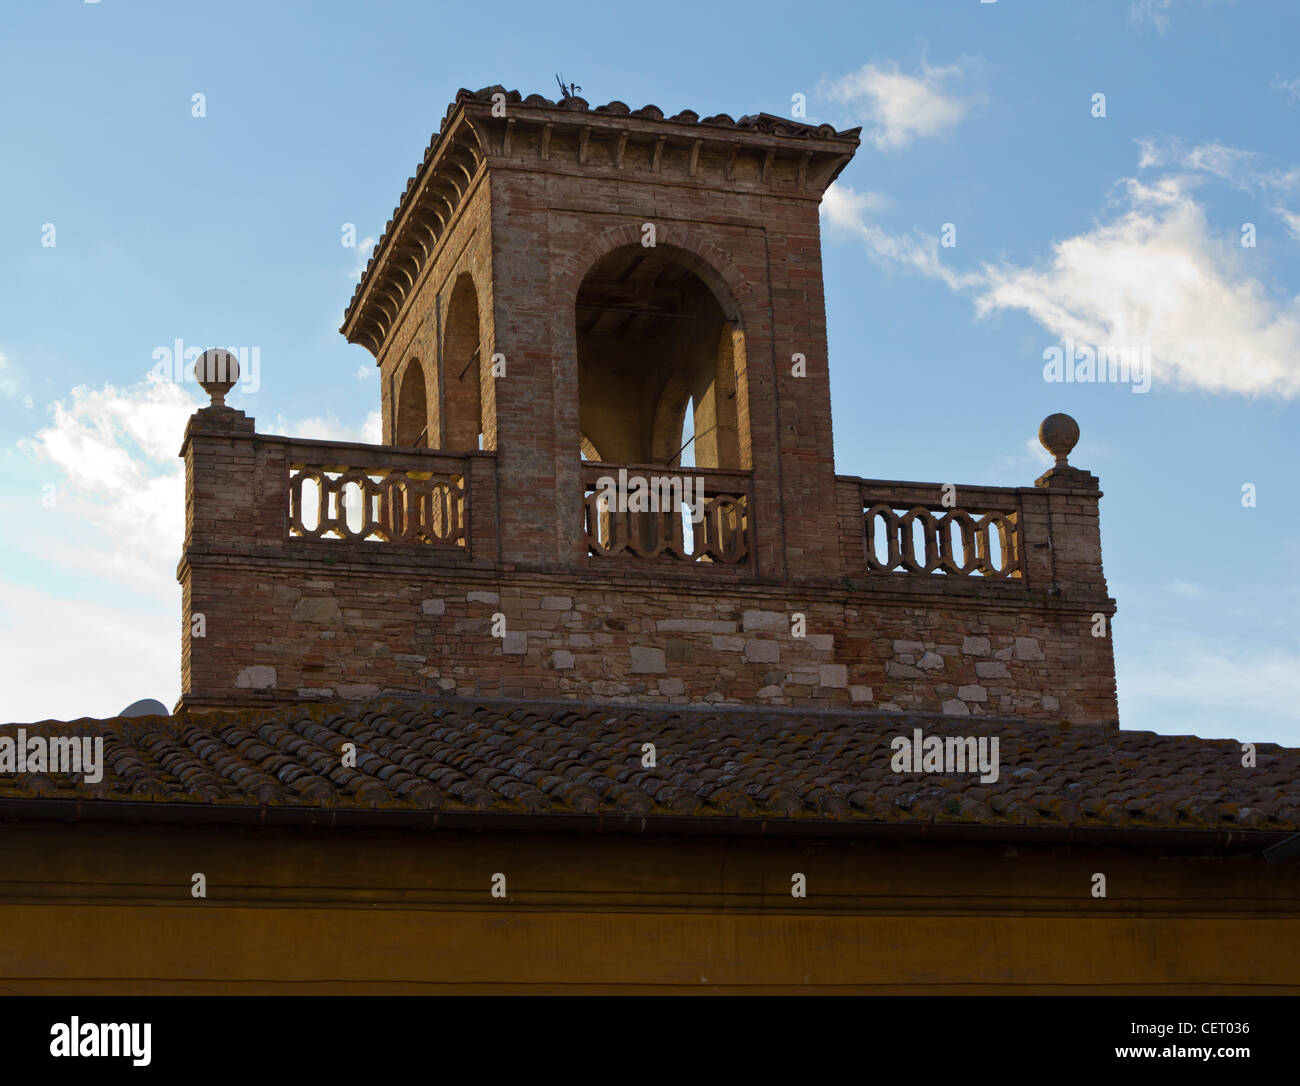 Stone tower in Perugia, Umbria, Italy. - Stock Image